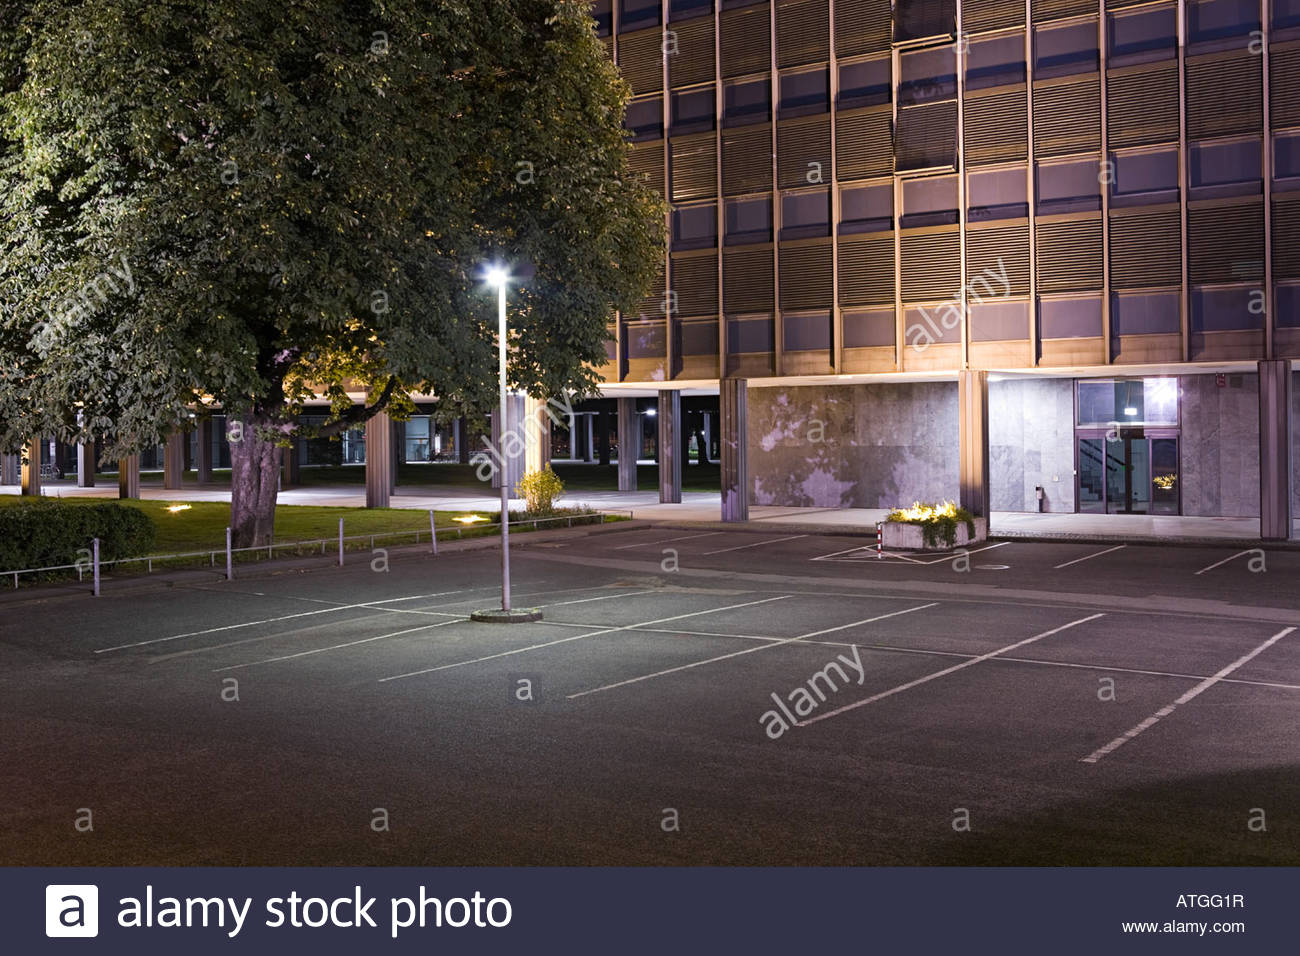 A car park infront of a building - Stock Image